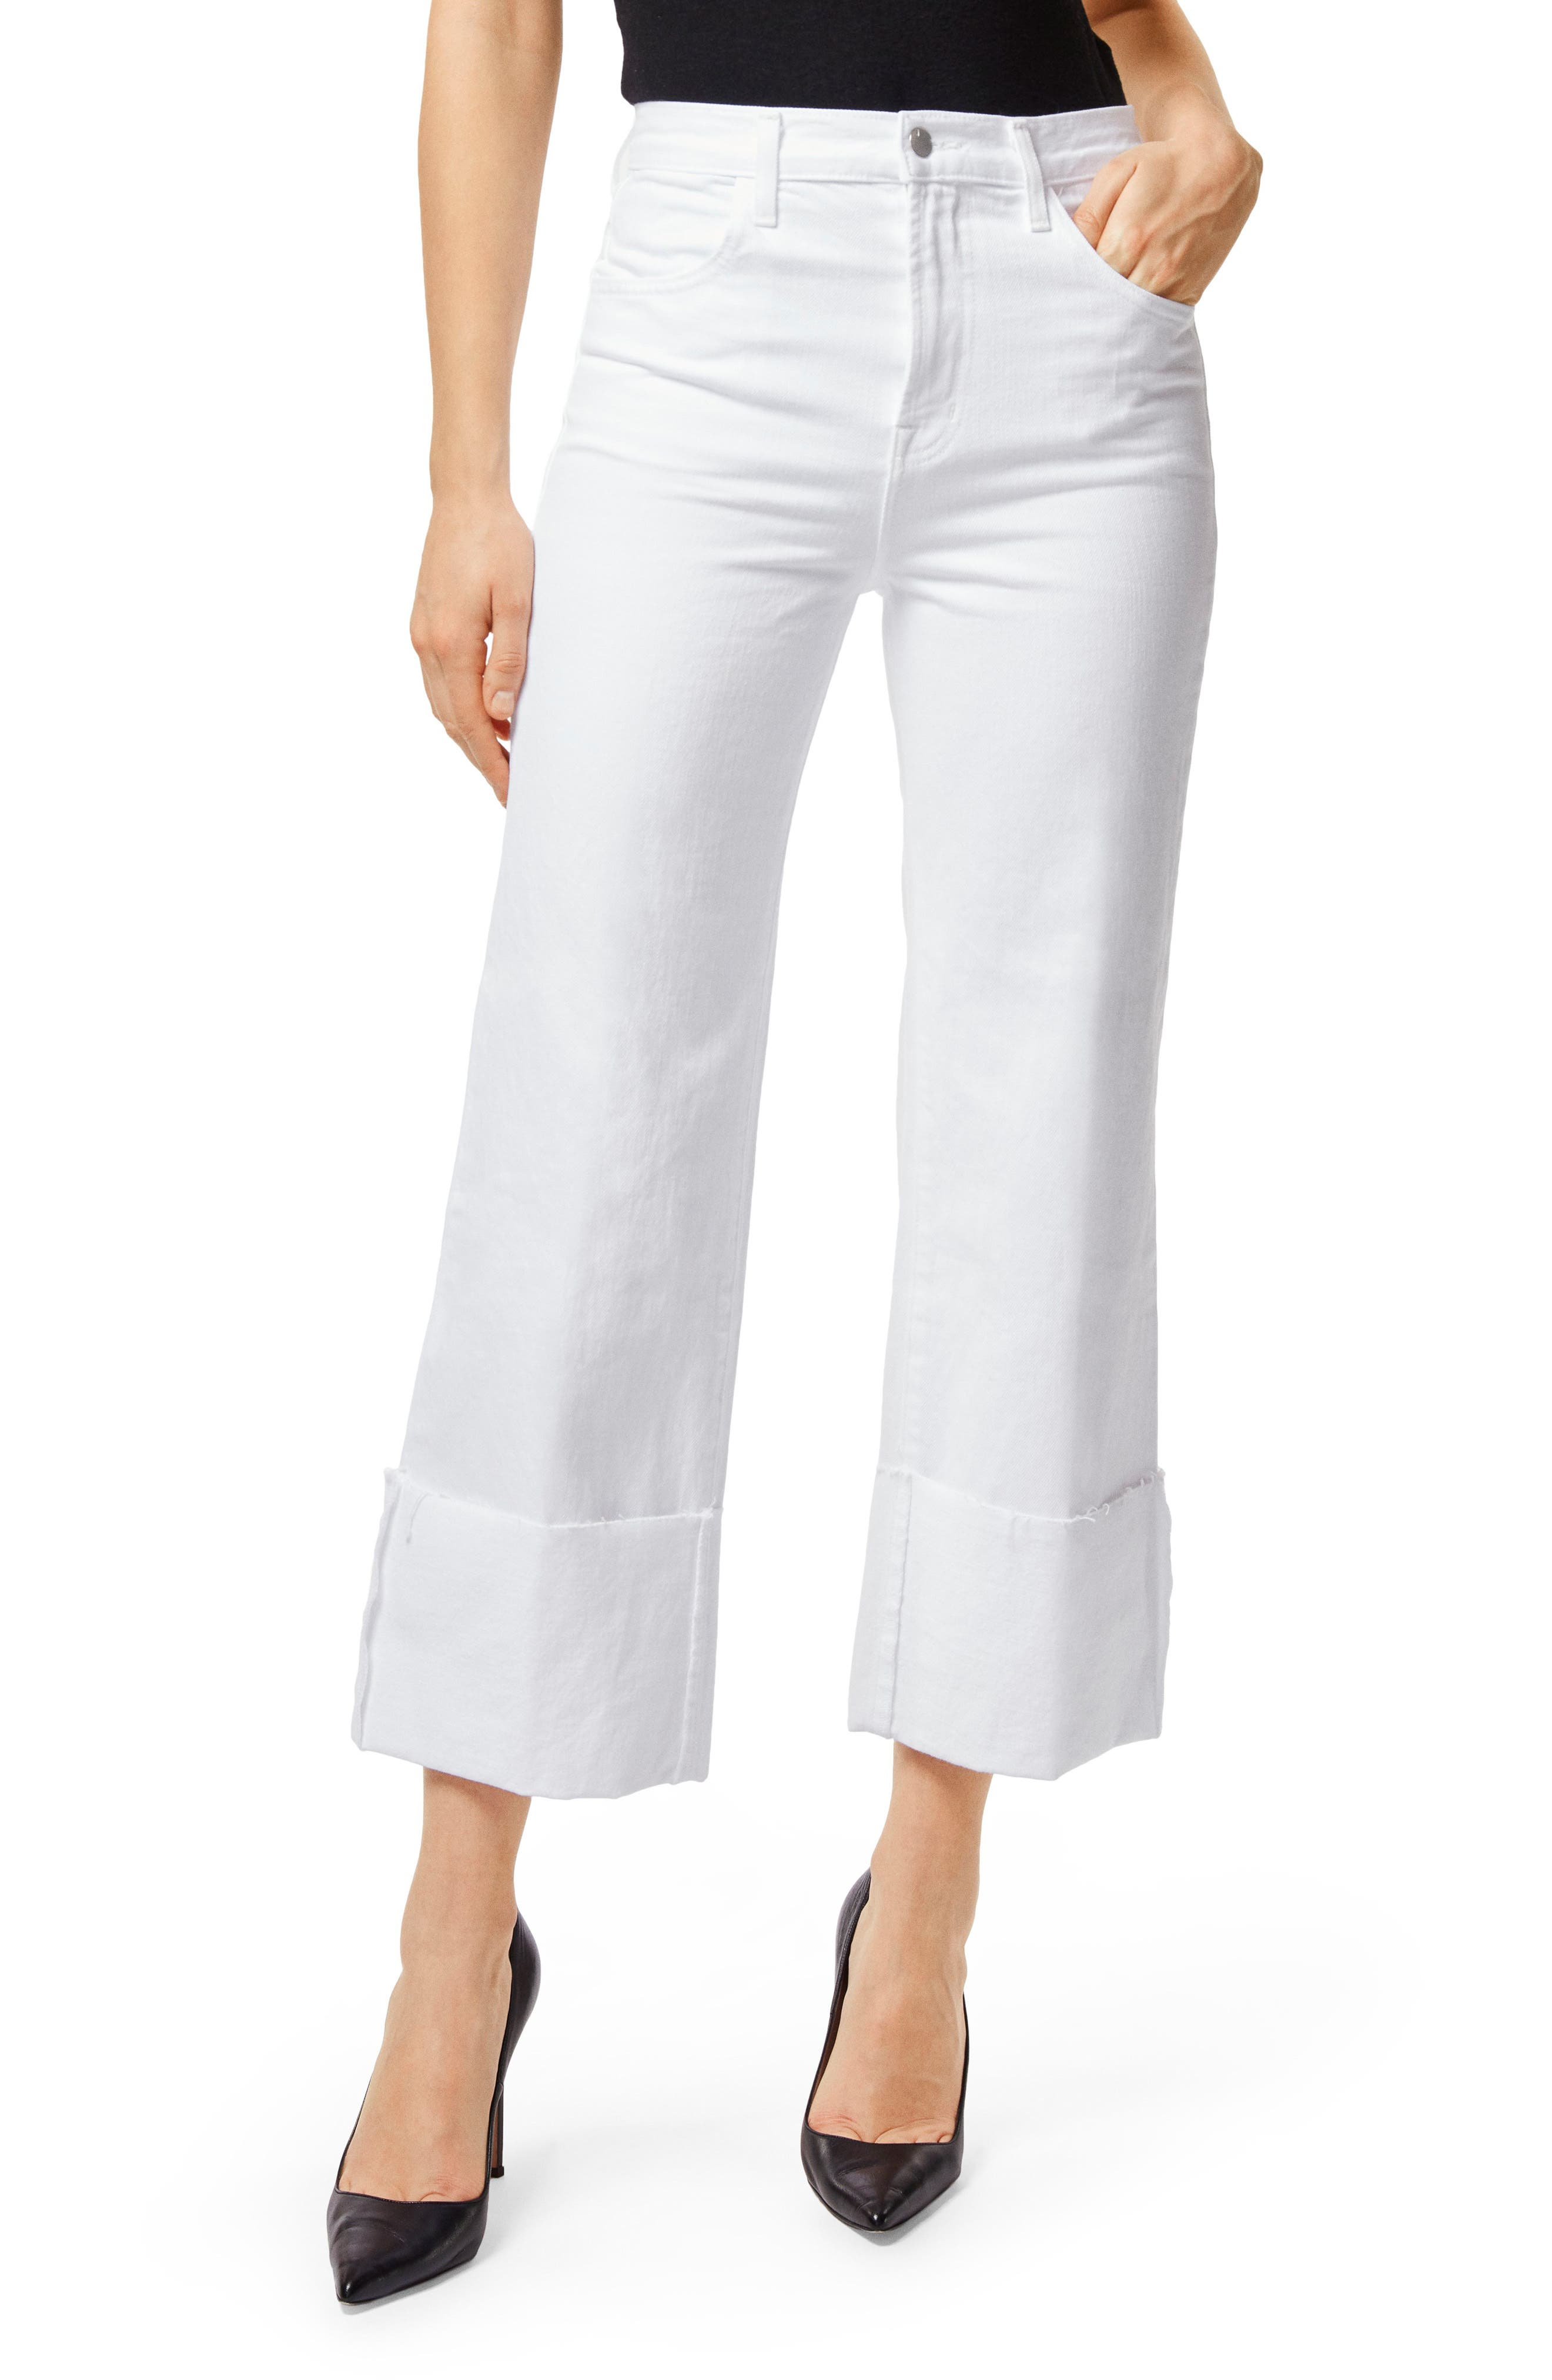 Joan High Waist Crop Wide Leg Jeans,                         Main,                         color, White